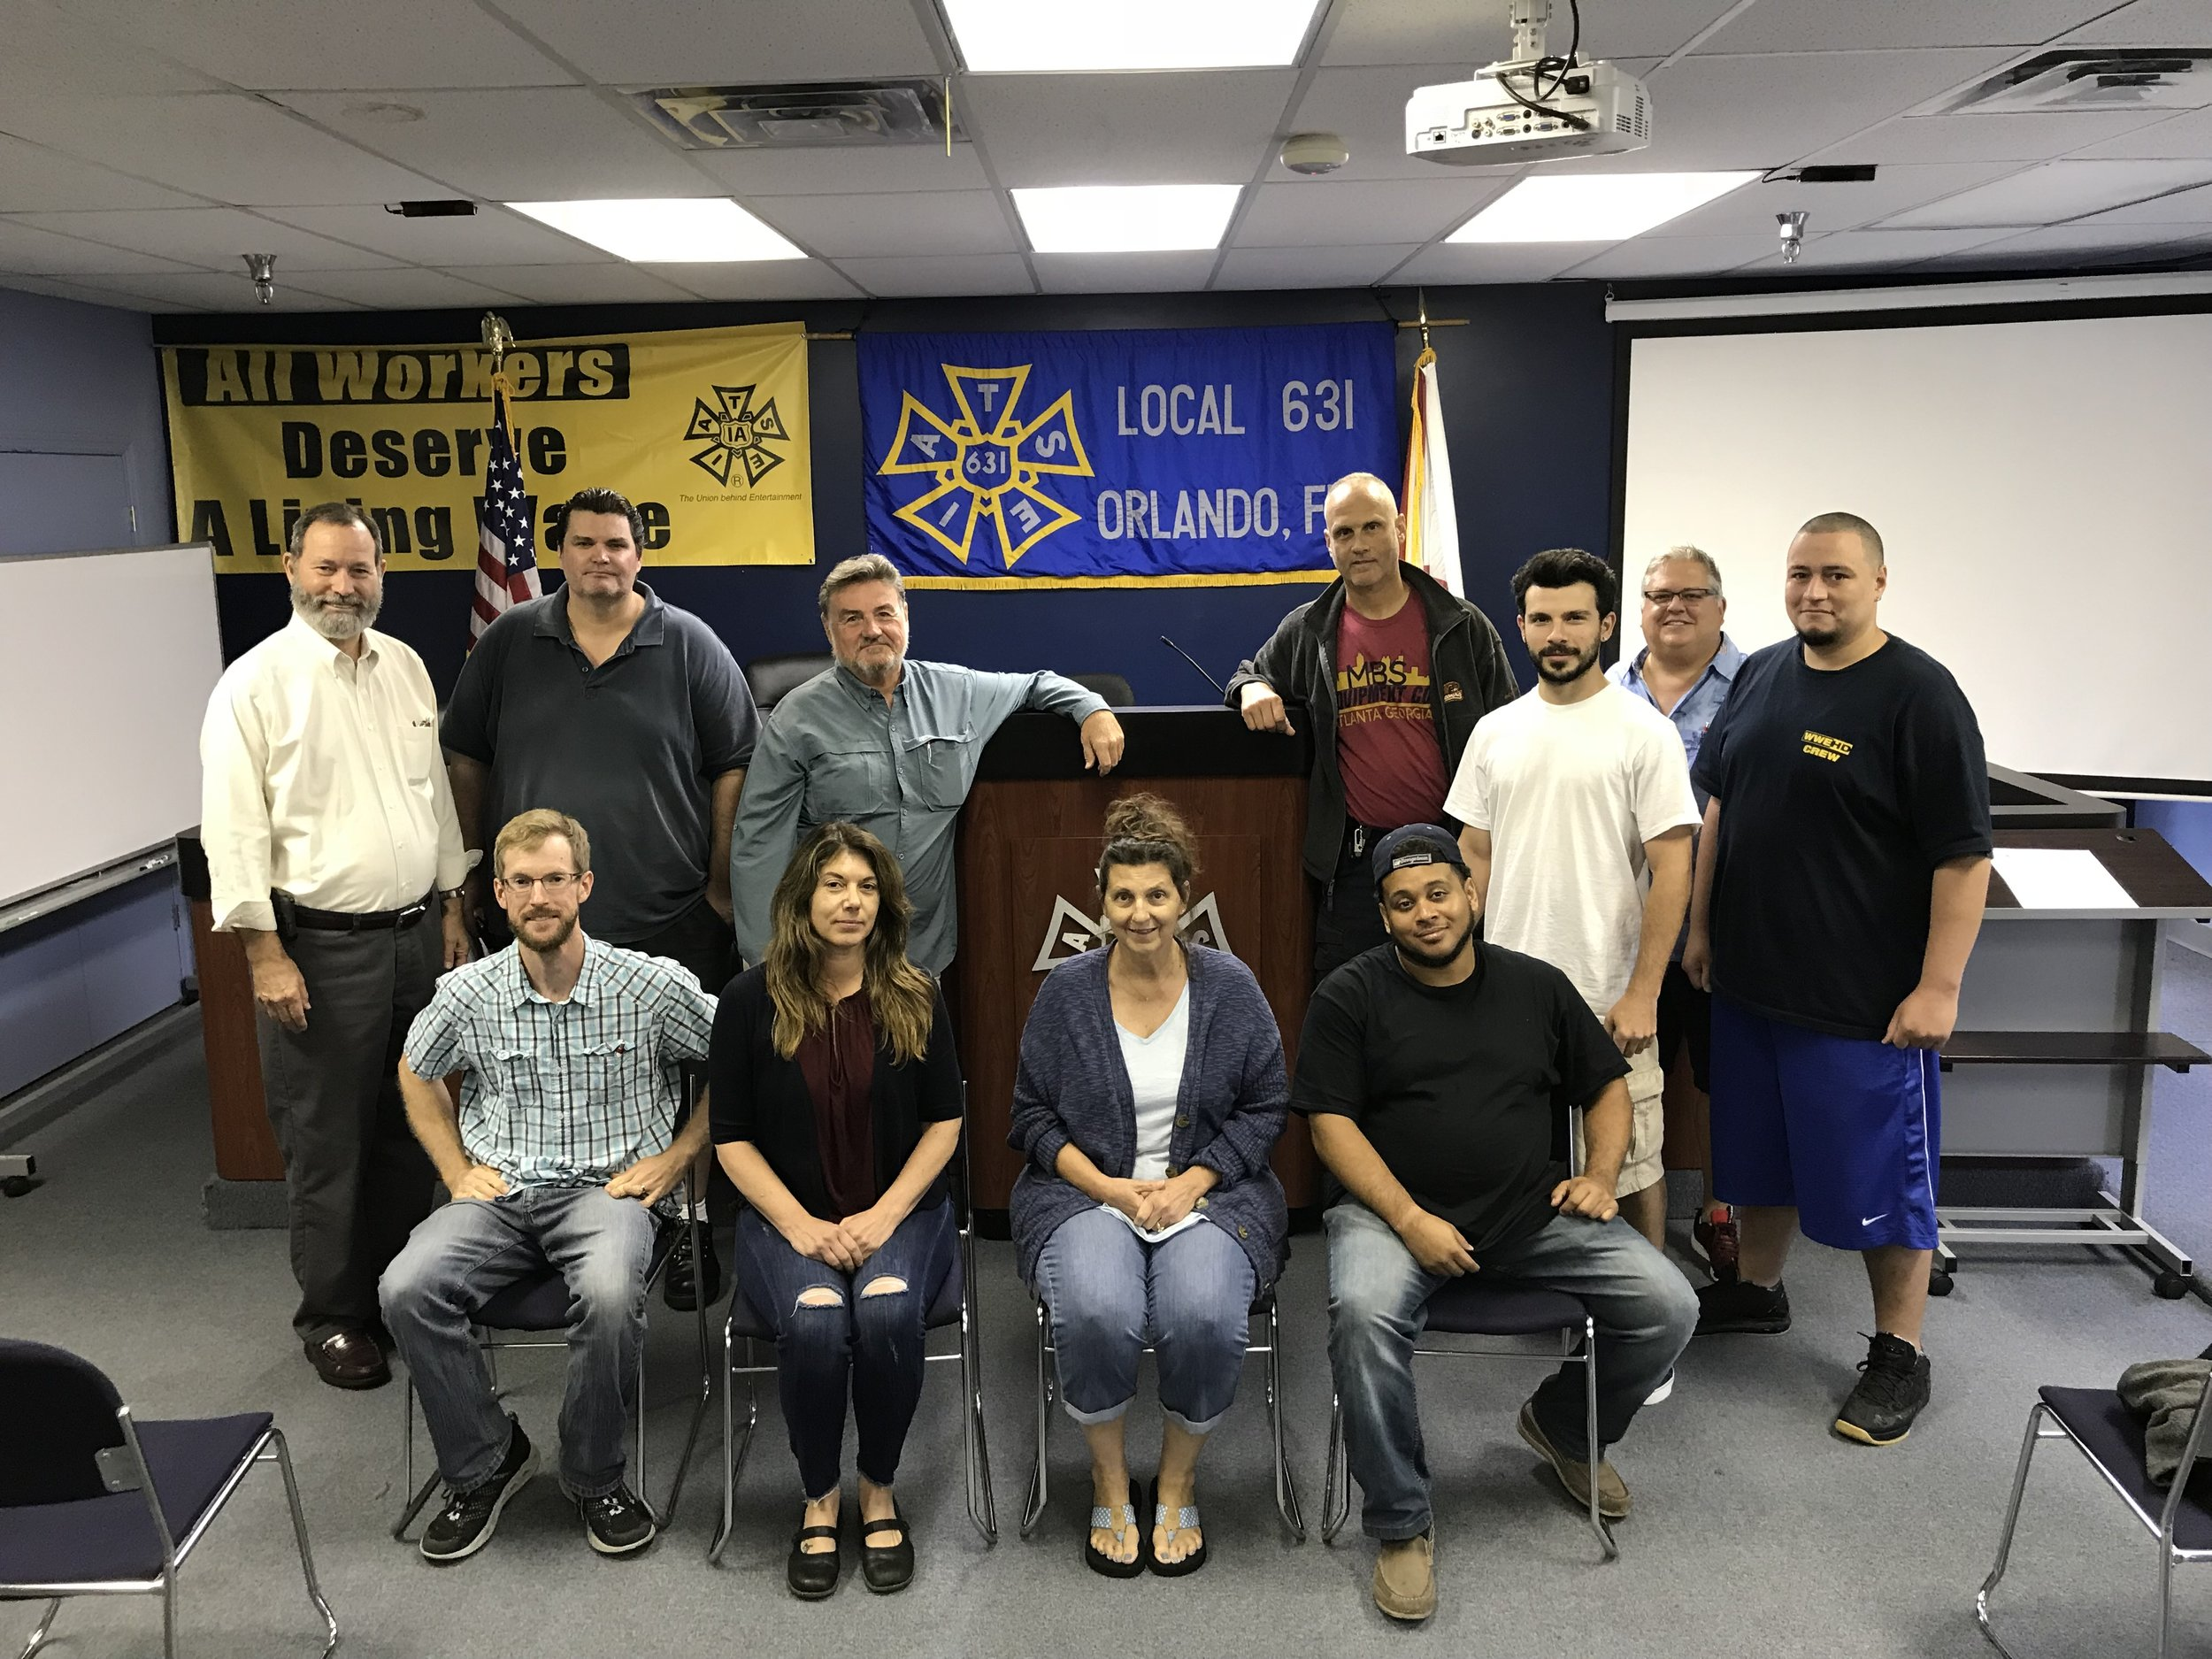 IATSE TTF OSHA 10/General Entertainment Safety in Orlando, FL | June 8-9, 2018